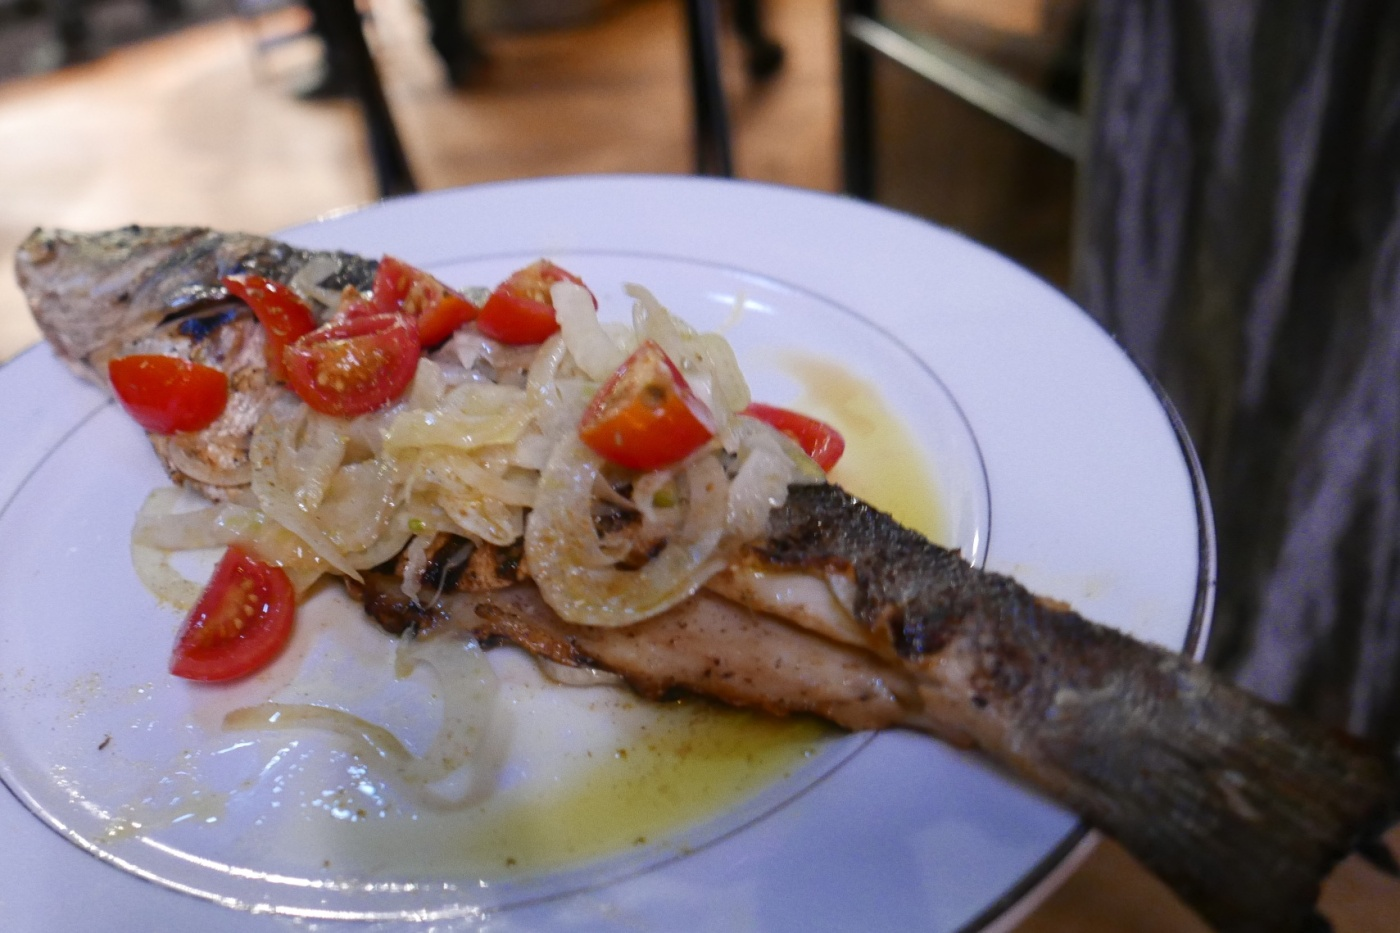 Grilled Whole Branzino, fennel pollen, olive oil, tomato confit